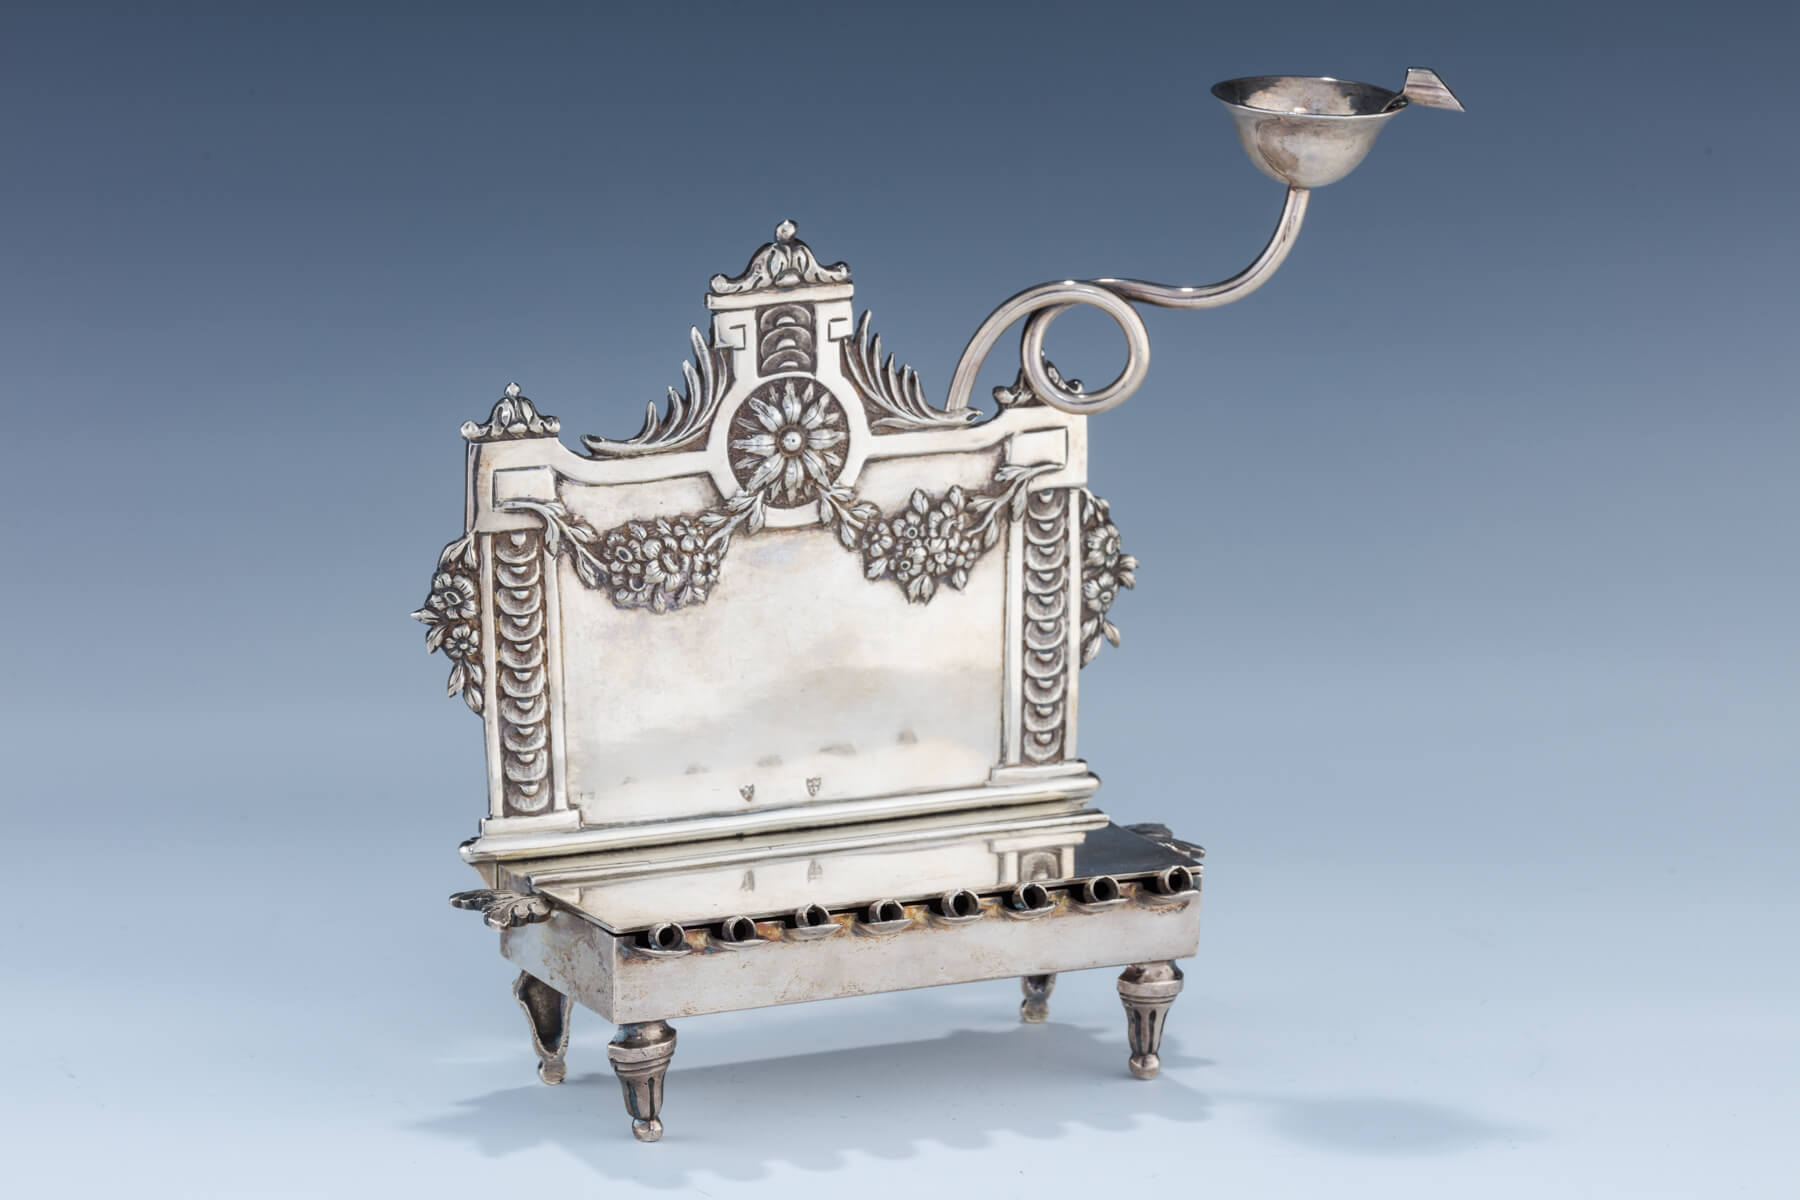 74. A Rare And Important Silver Hanukkah Lamp